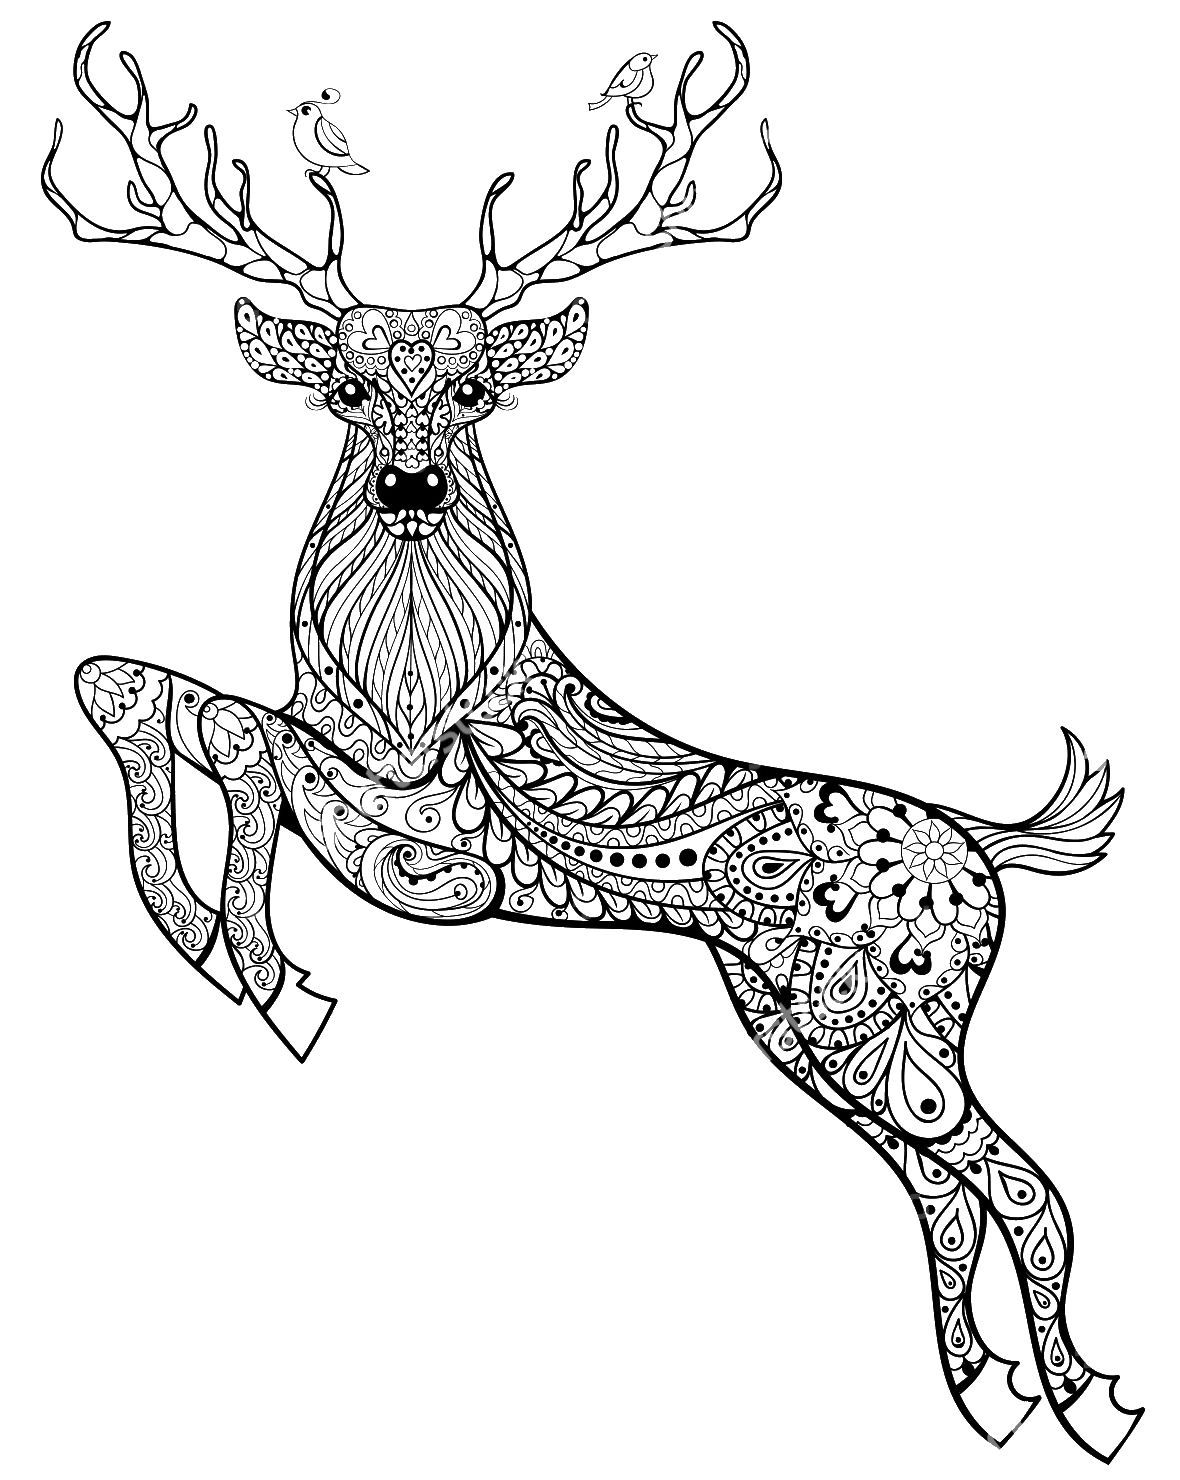 Adult Coloring Pages Deer --> If you\'re looking for the top coloring ...